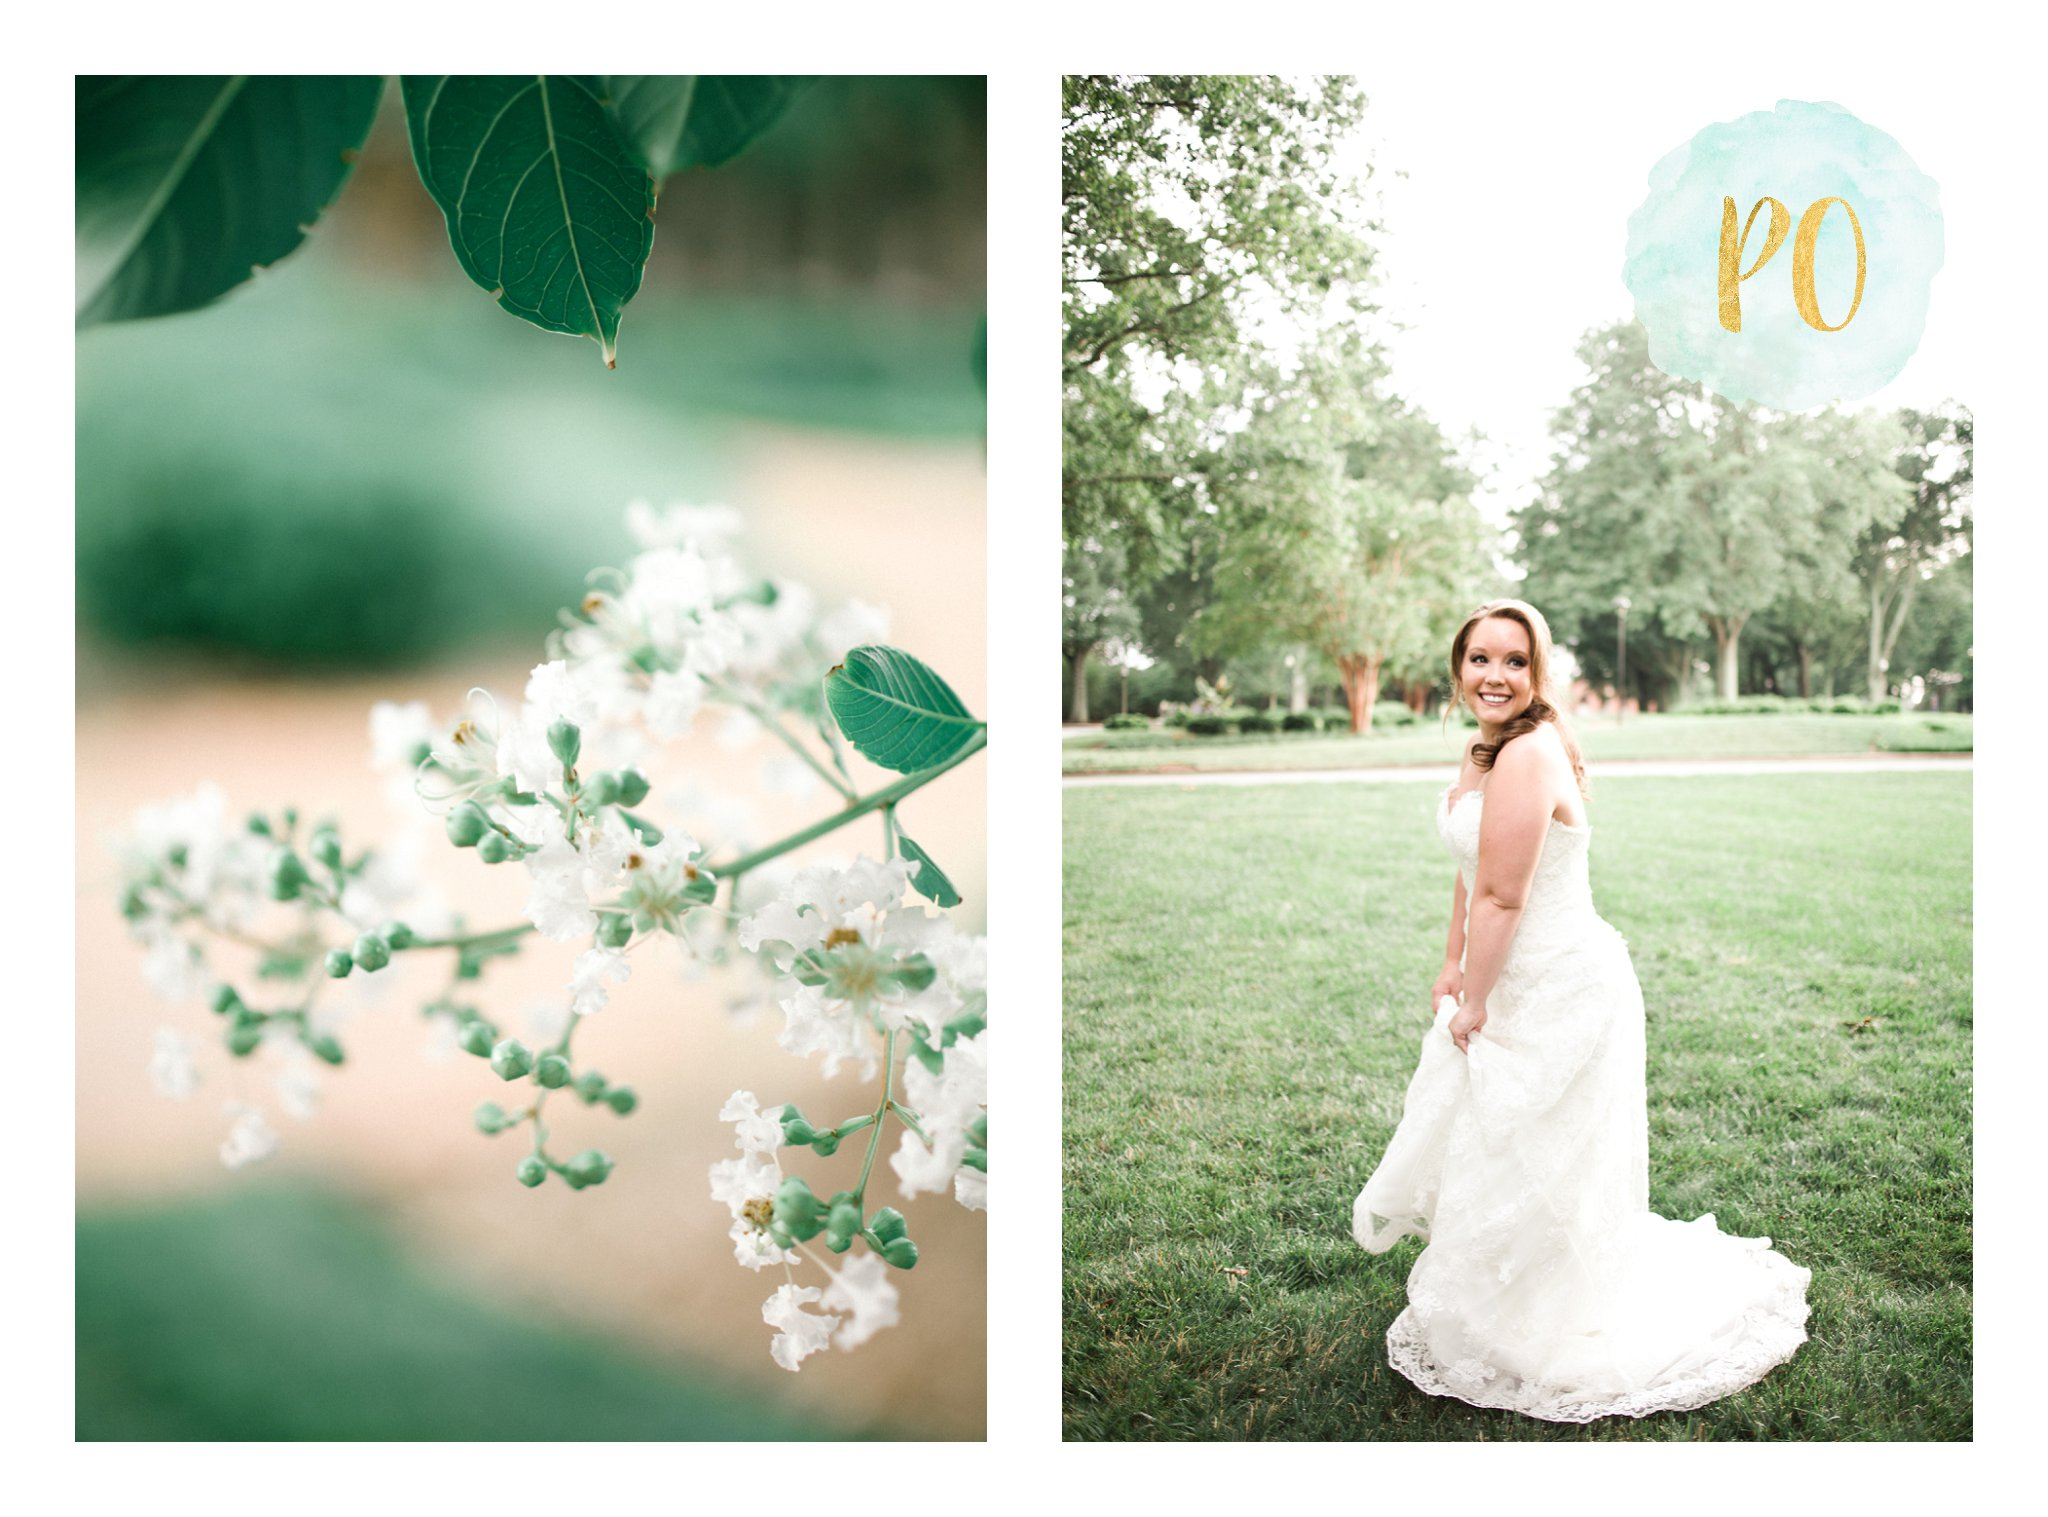 furman-bridal-portrait-greenvile-sc-photos_0002.jpg